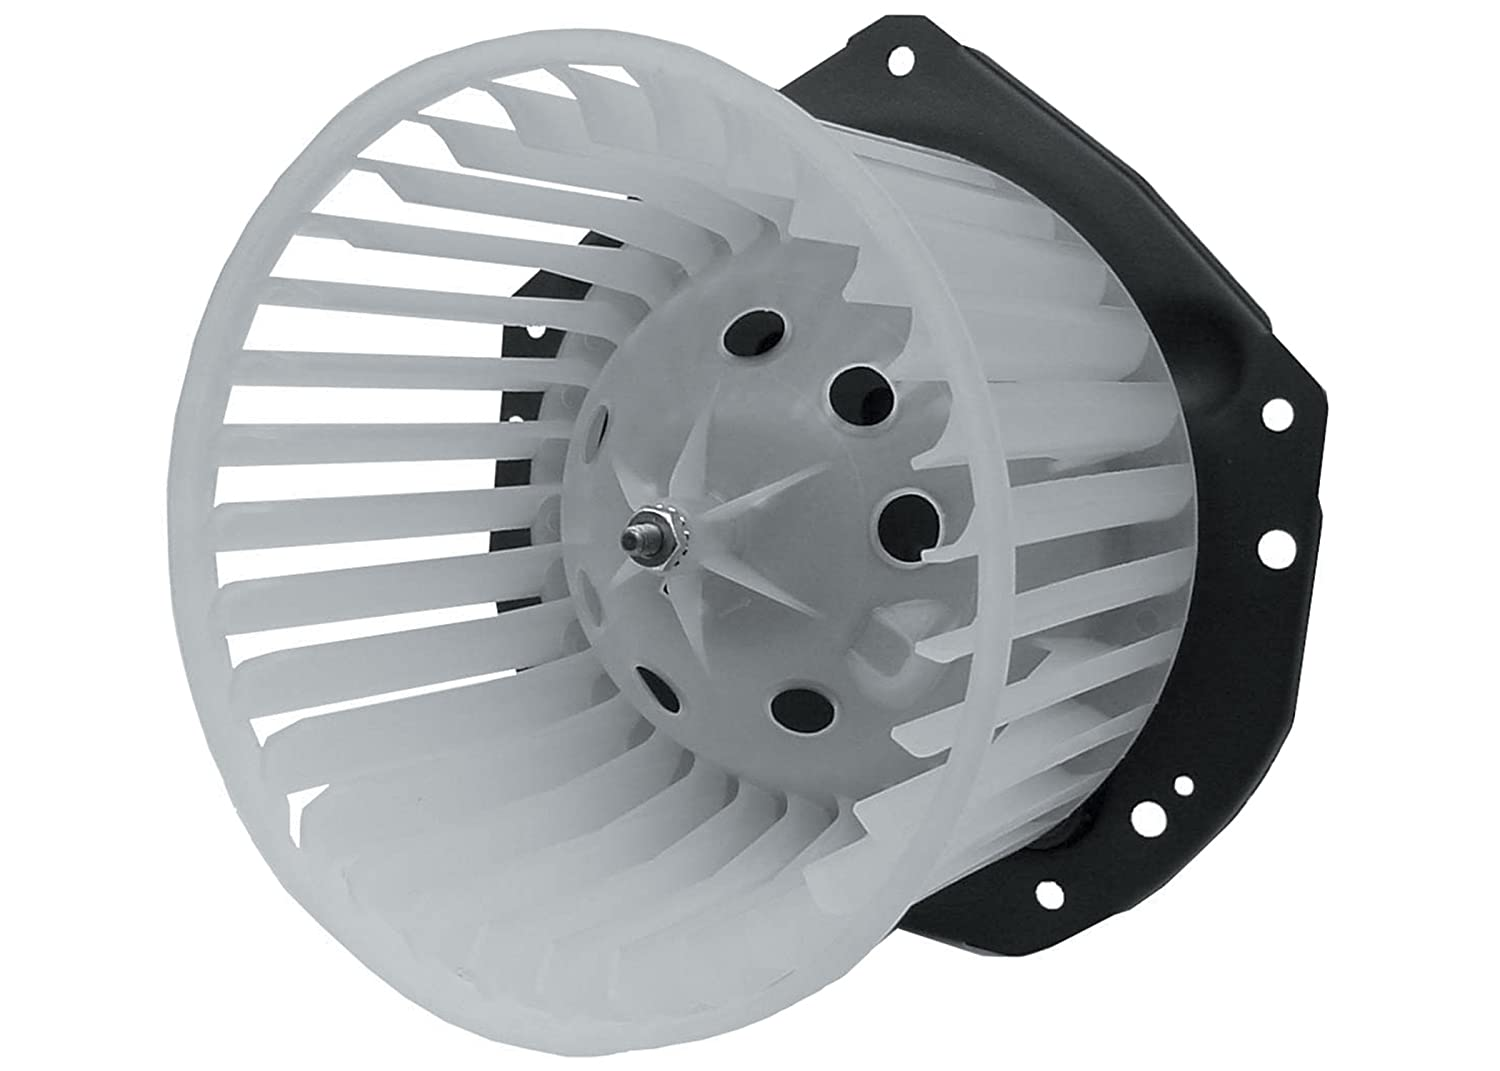 ACDelco 15-80386 GM Original Equipment Heating and Air Conditioning Blower Motor with Wheel rm-ACM-15-80386